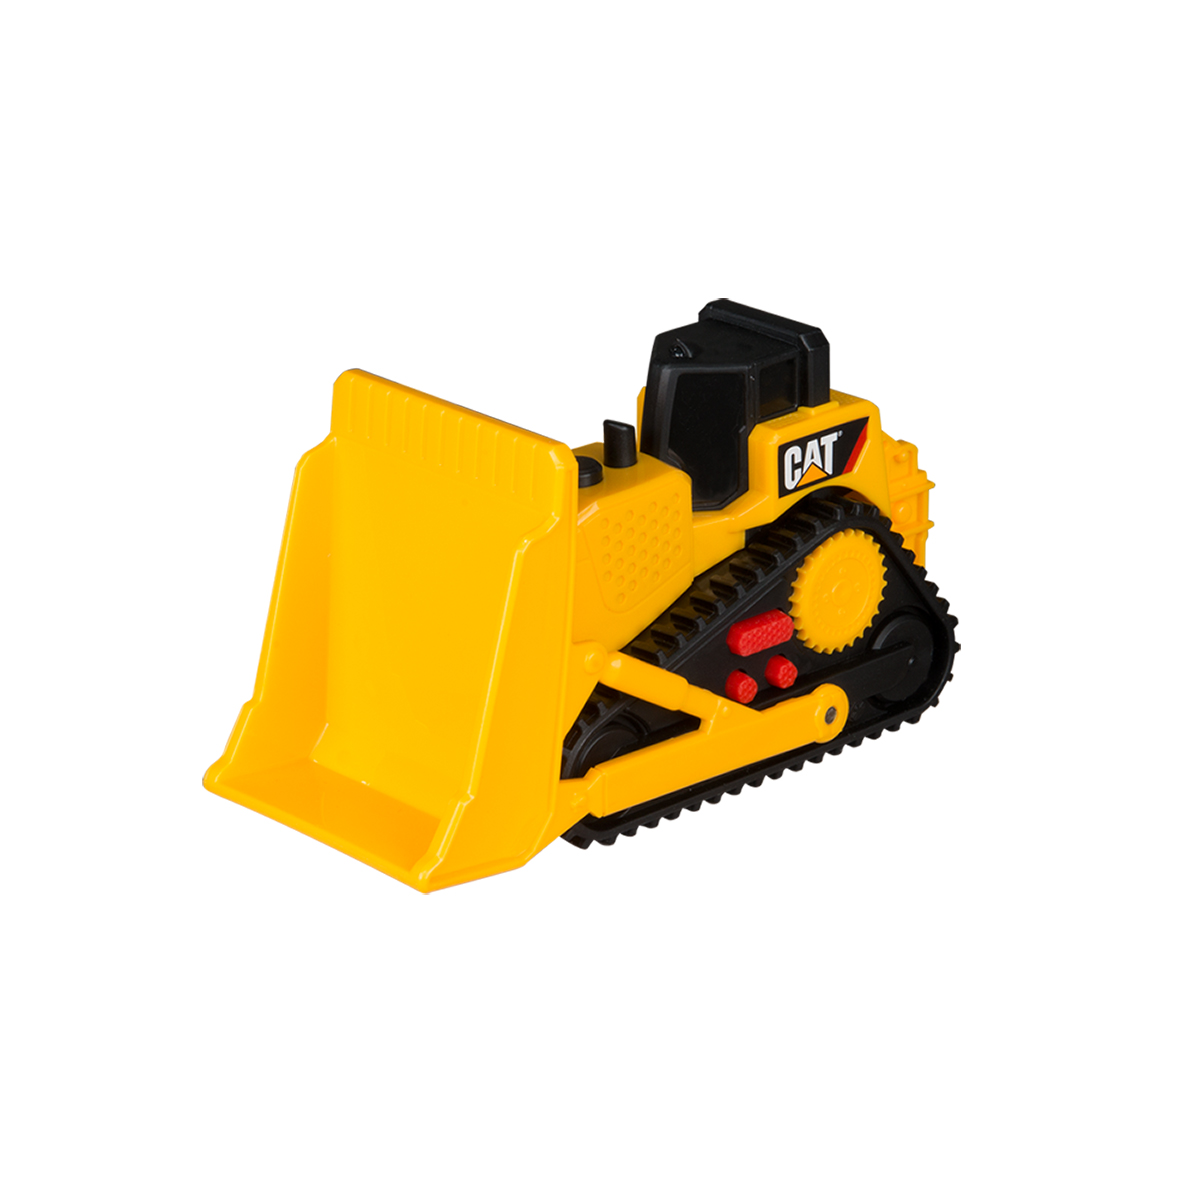 buldozer toy state cat mini mover l&s